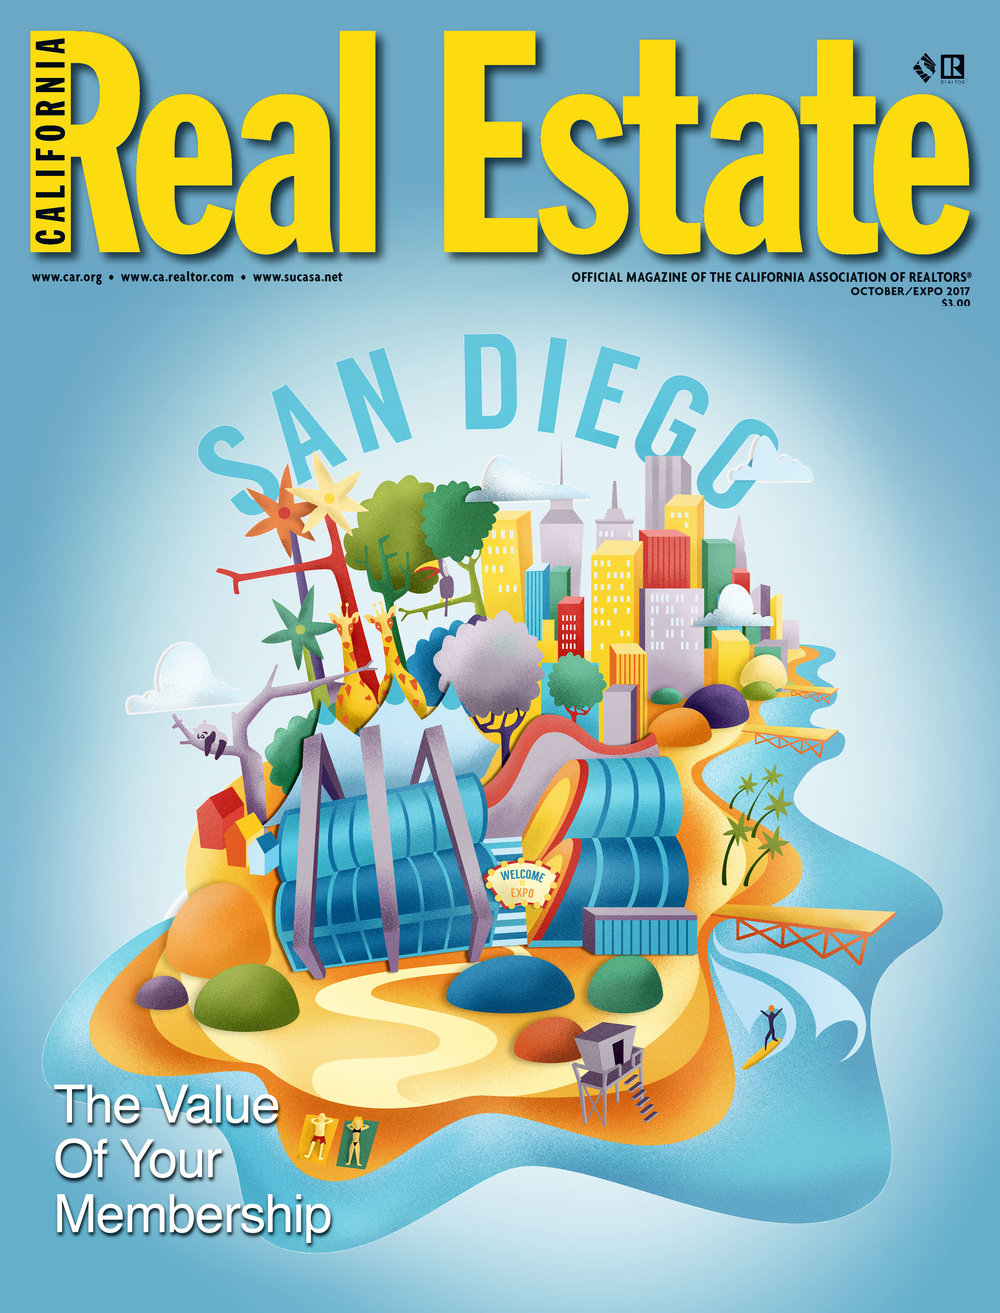 Reddin-Designs-Californian-real-estate-cover-.jpg